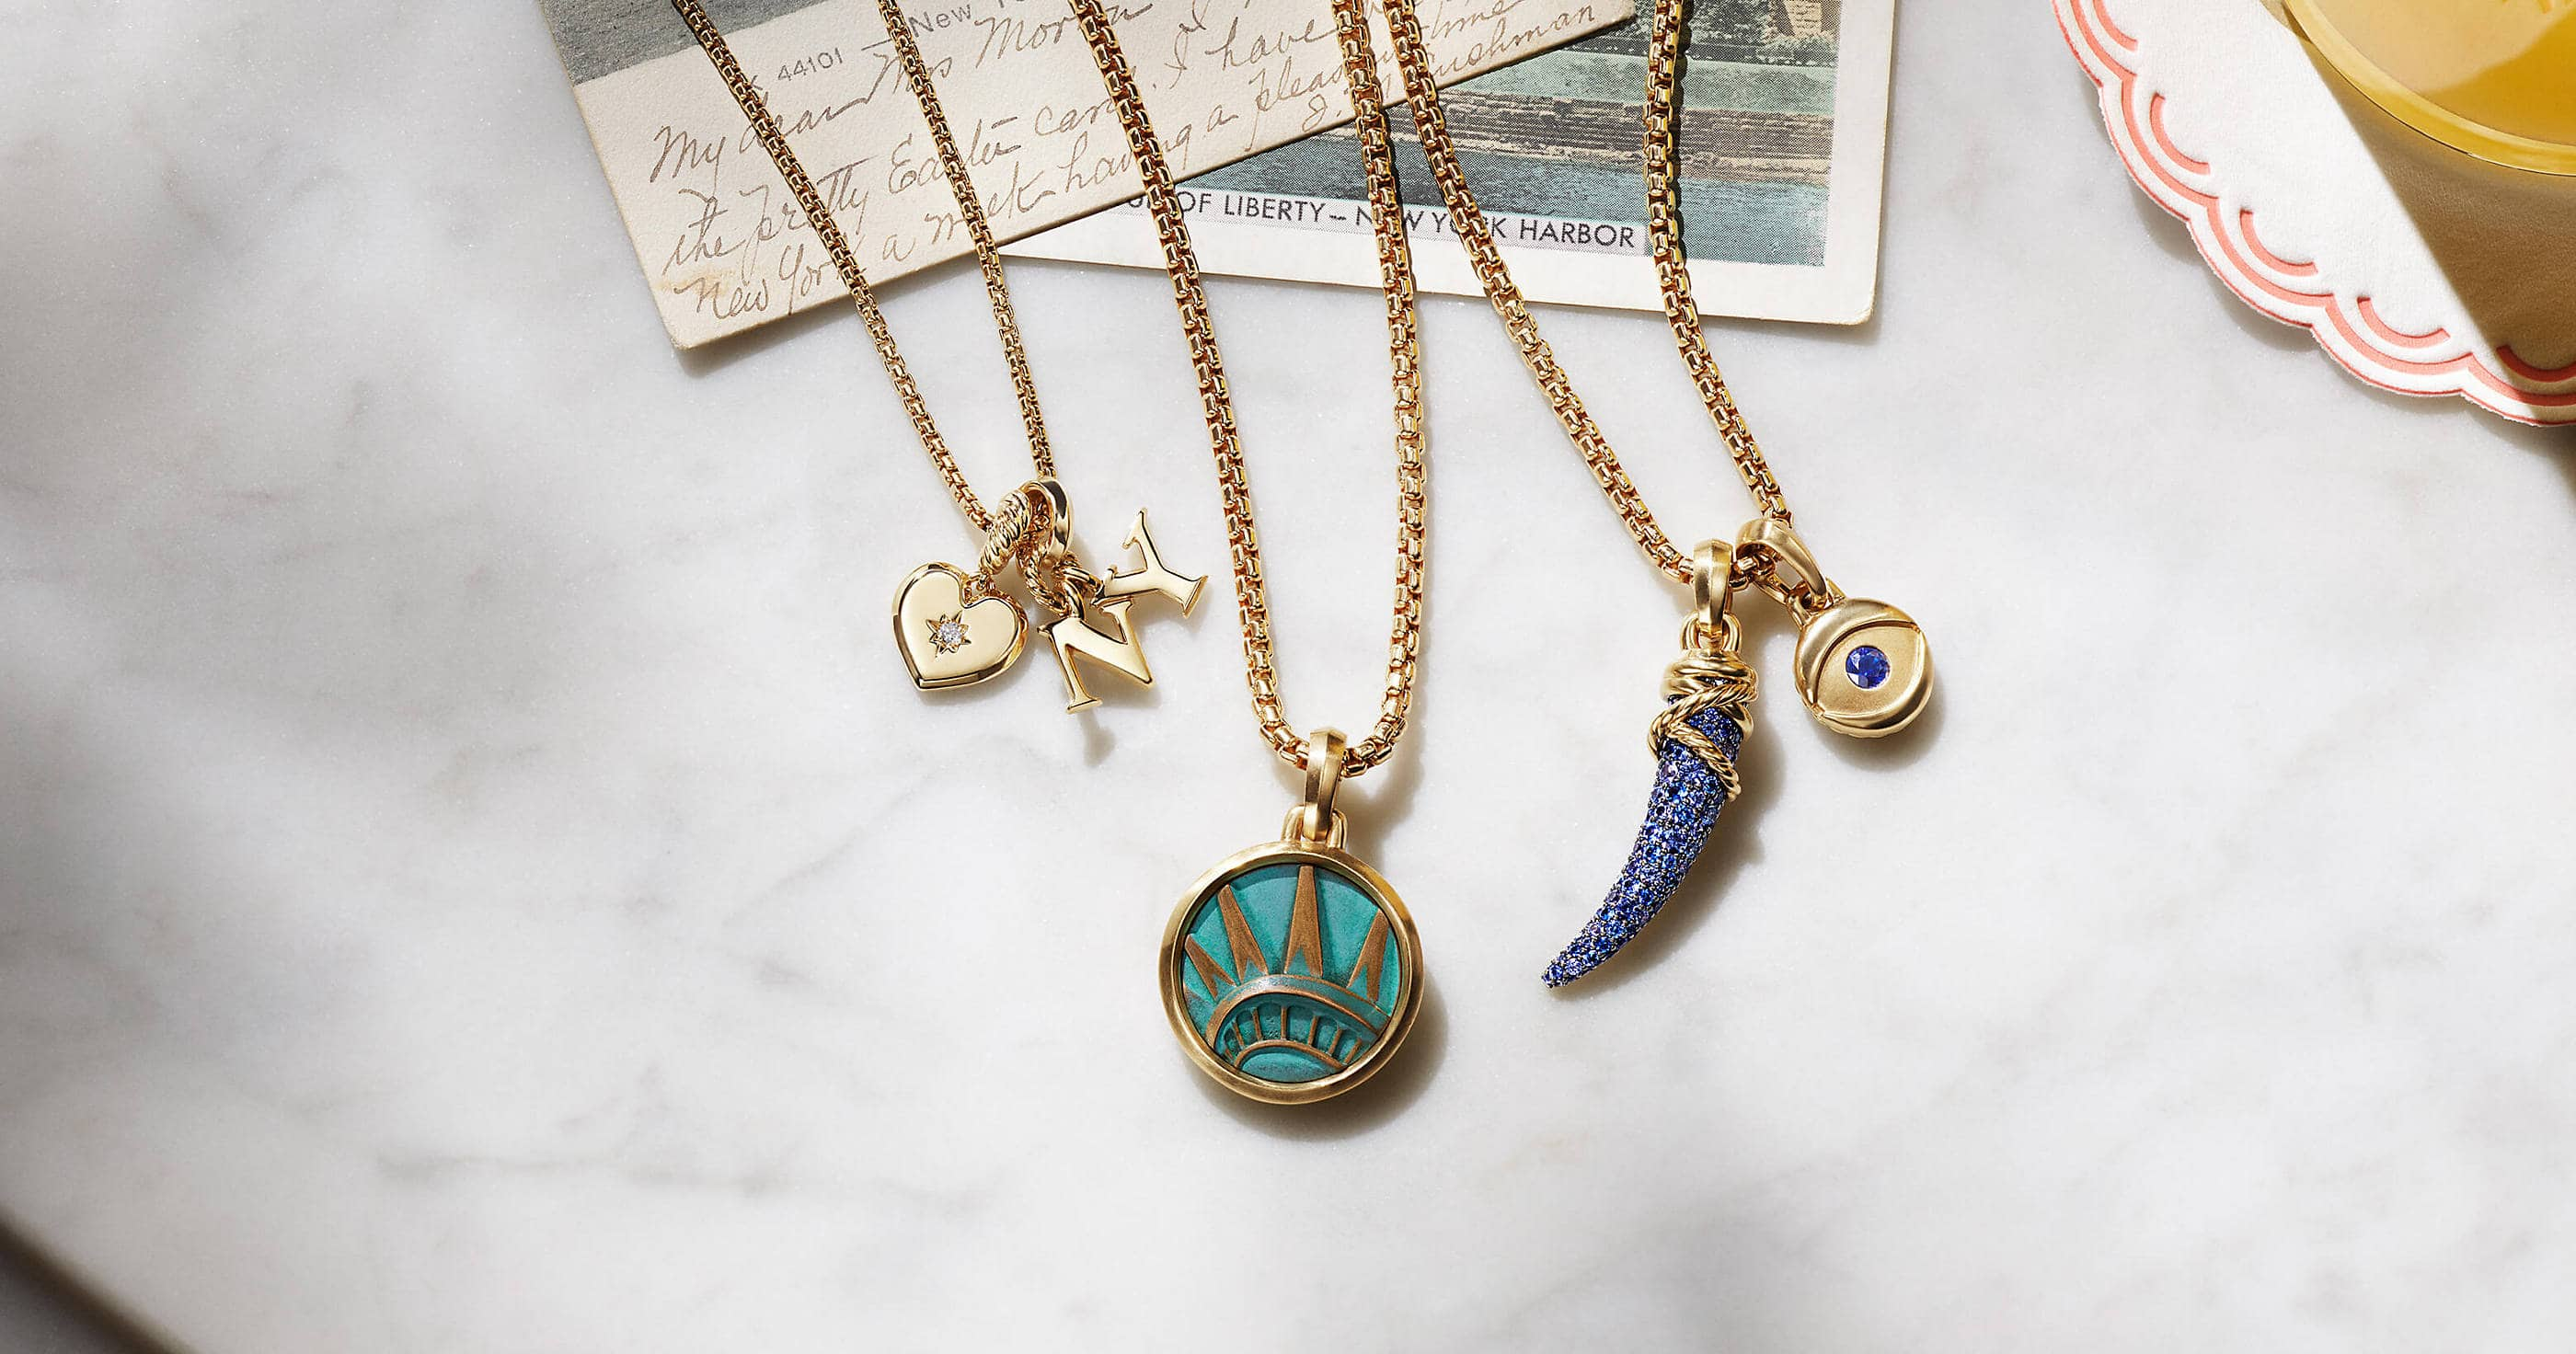 "A color photo shows three David Yurman chain necklaces strung with amulet pendants, all lying on a marble table next to two New York postcards. The women's jewelry is crafted from 18K yellow gold with or without pavé diamonds and sapphires. The pendants come in various shapes such as a heart, dagger, evil eye or ""NY"" initials. One pendant depicts the crown of the Statue of Liberty."